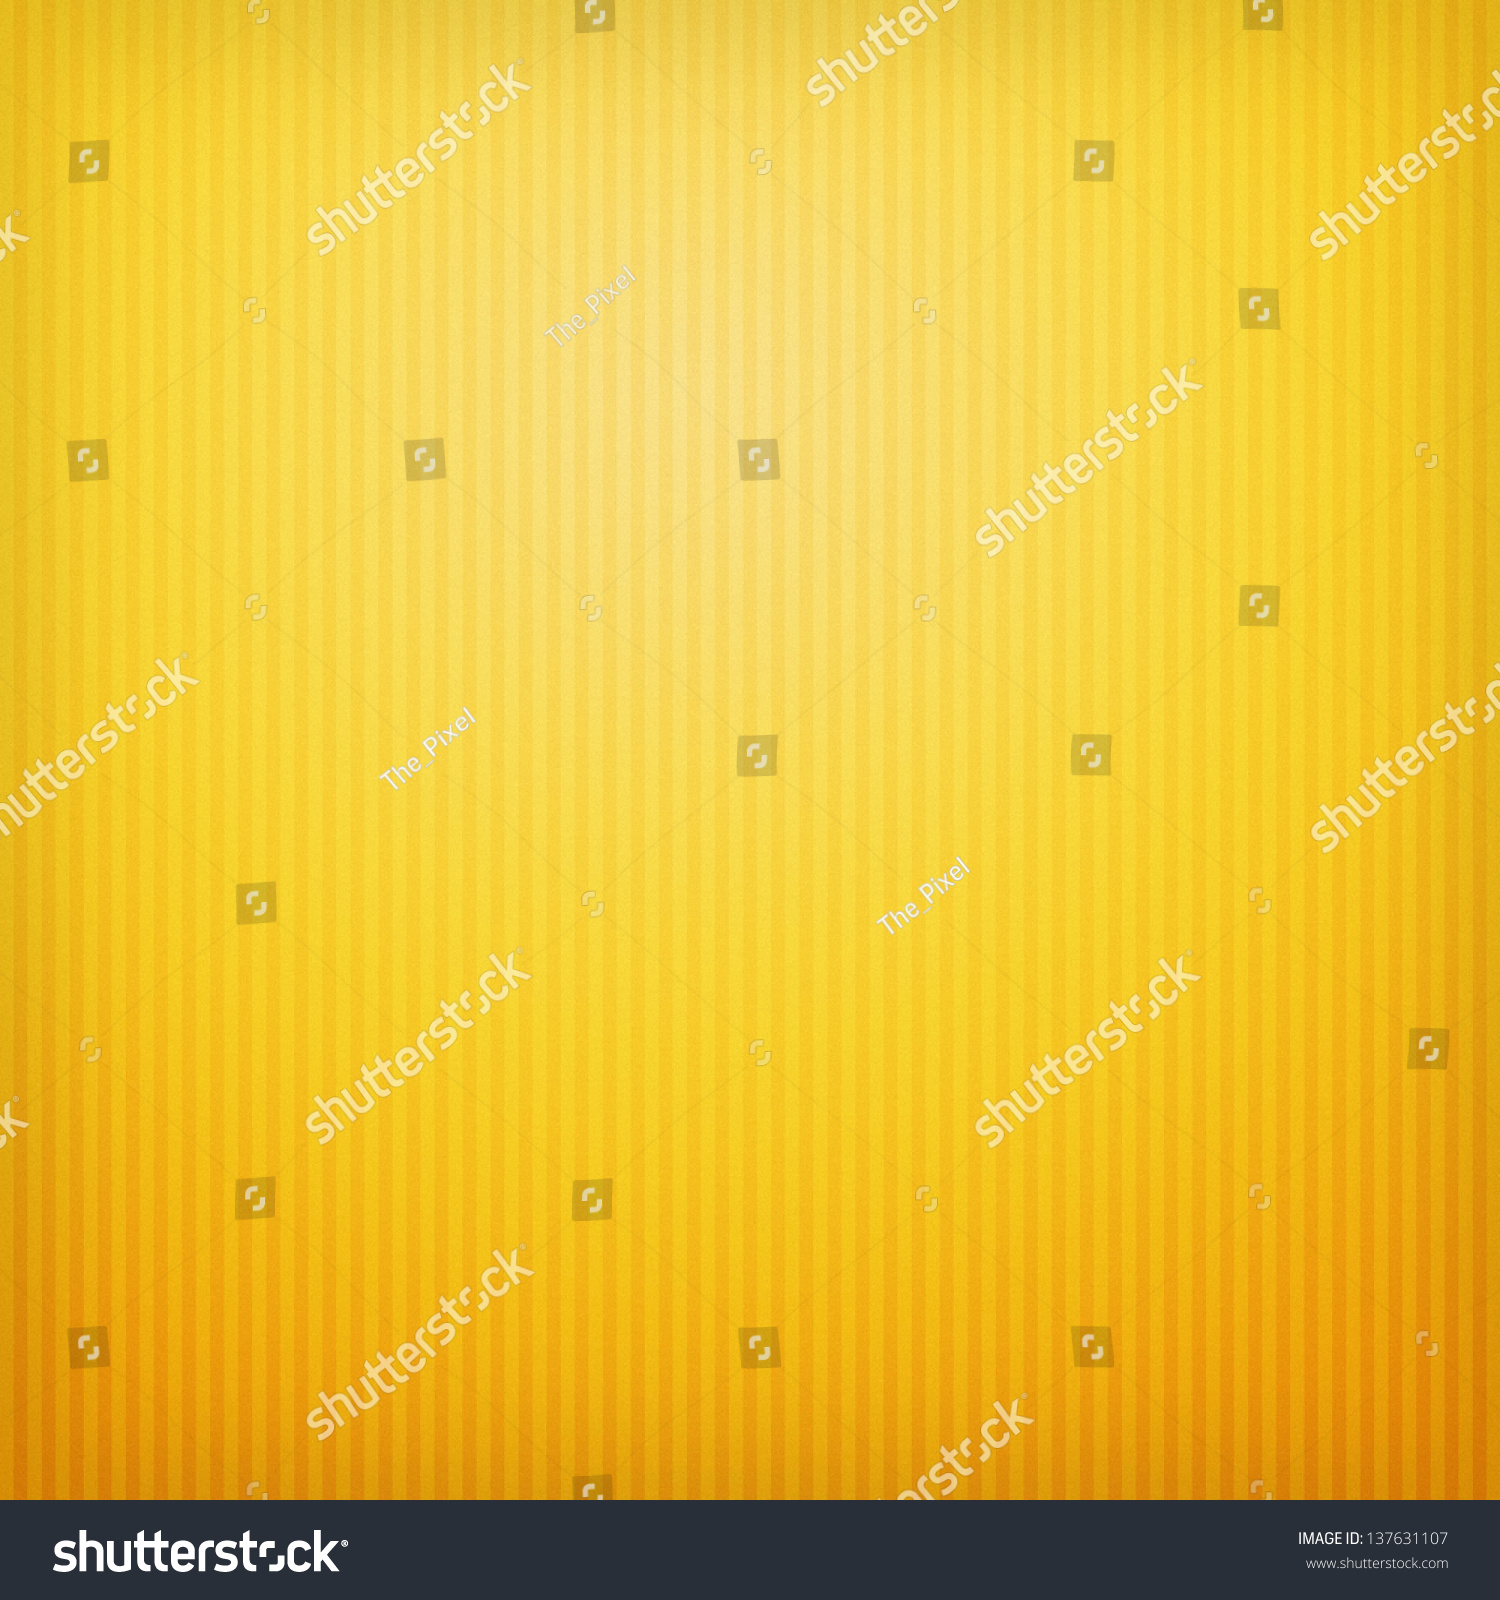 Yellow, Orange Background Abstract Design Texture. High